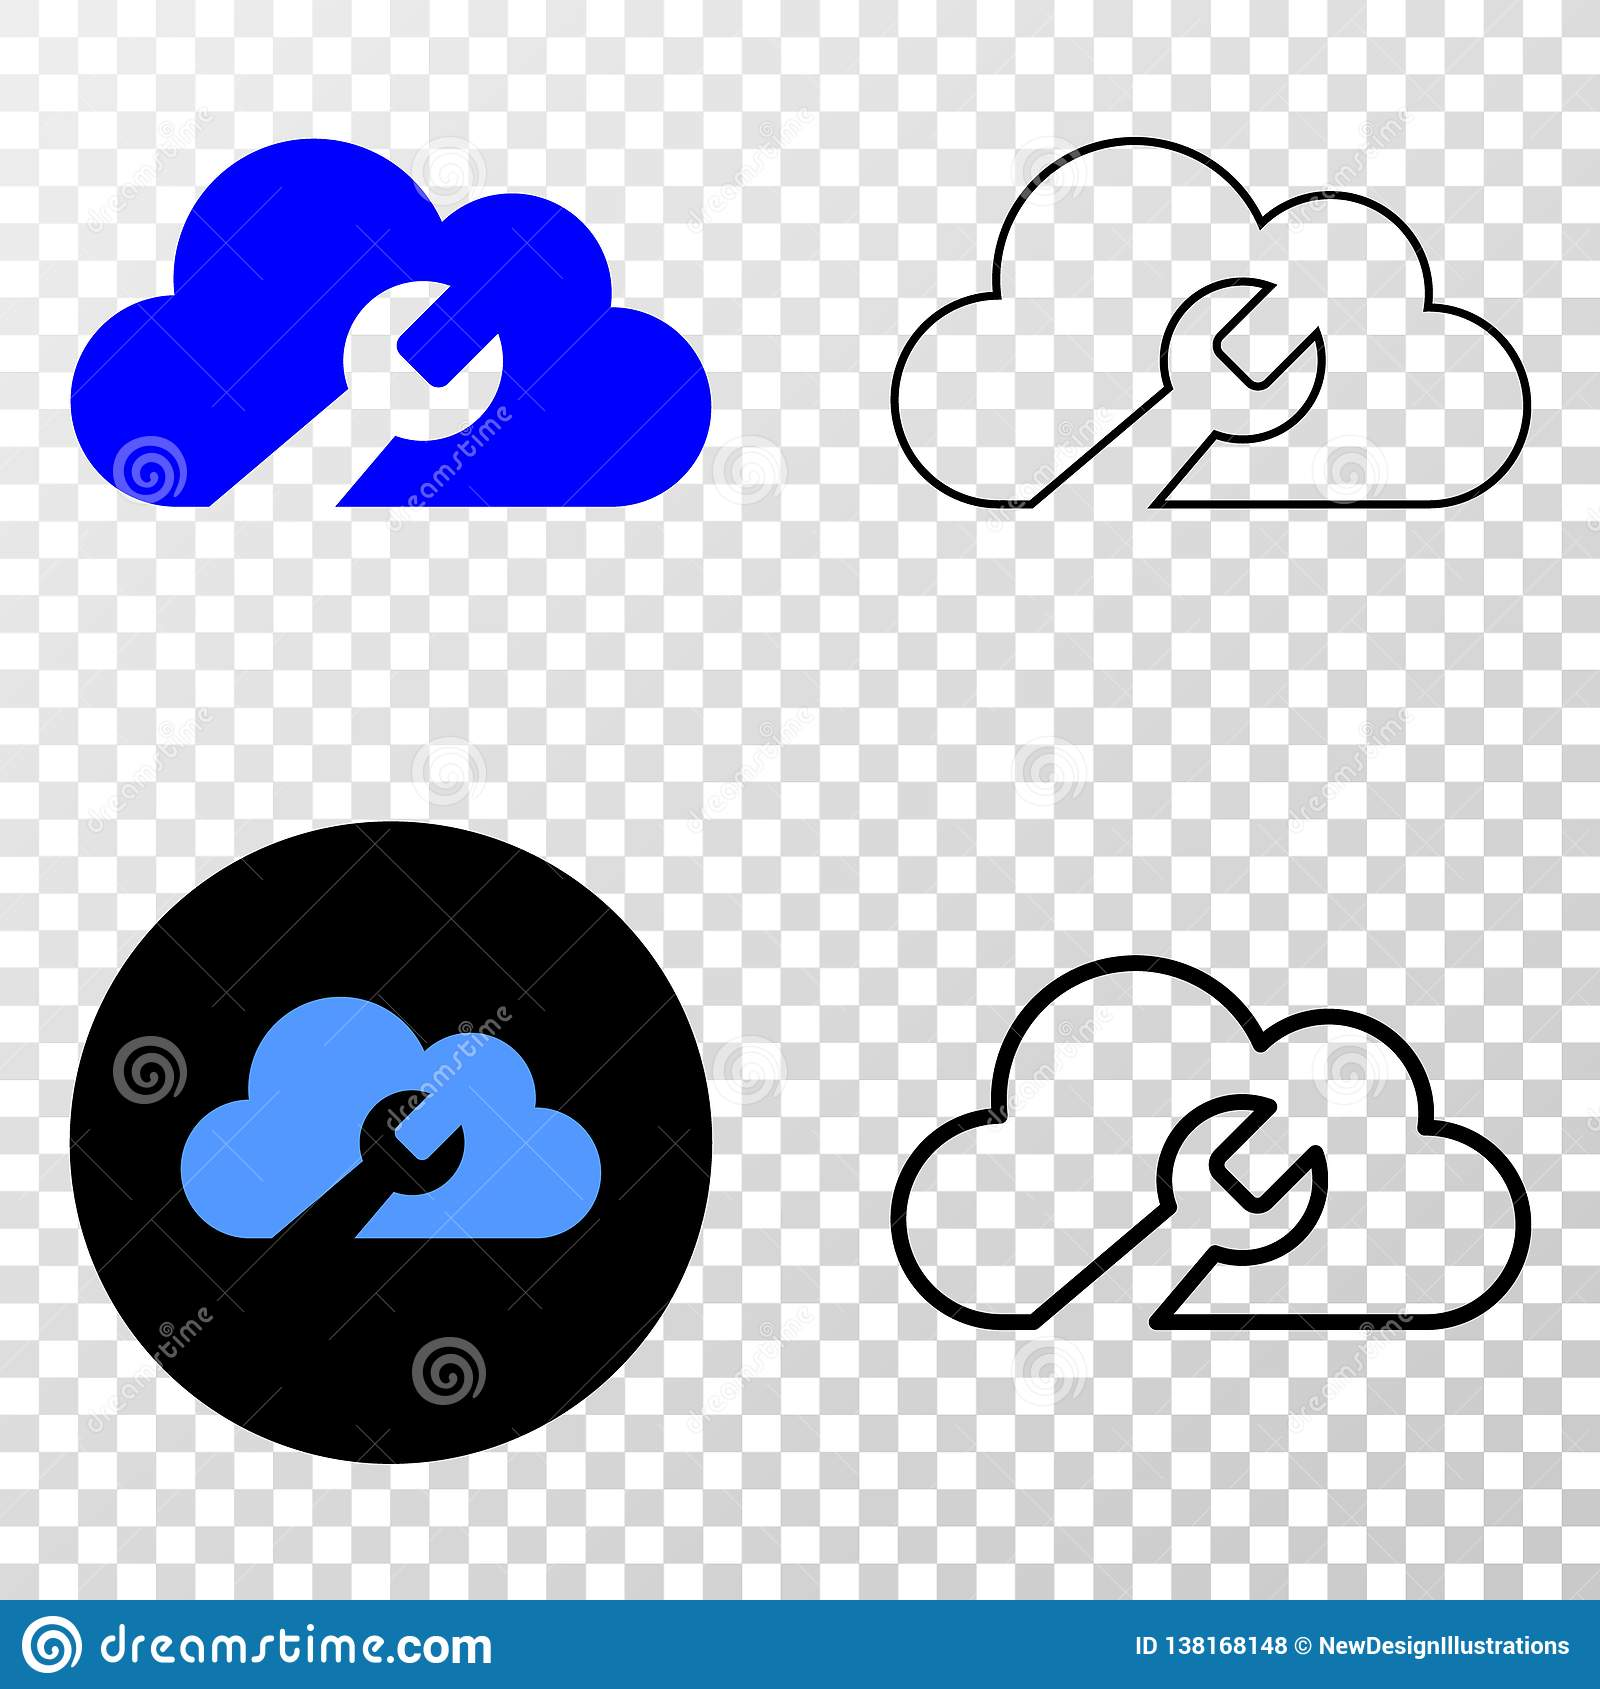 Cloud Wrench Vector EPS Icon with Contour Version